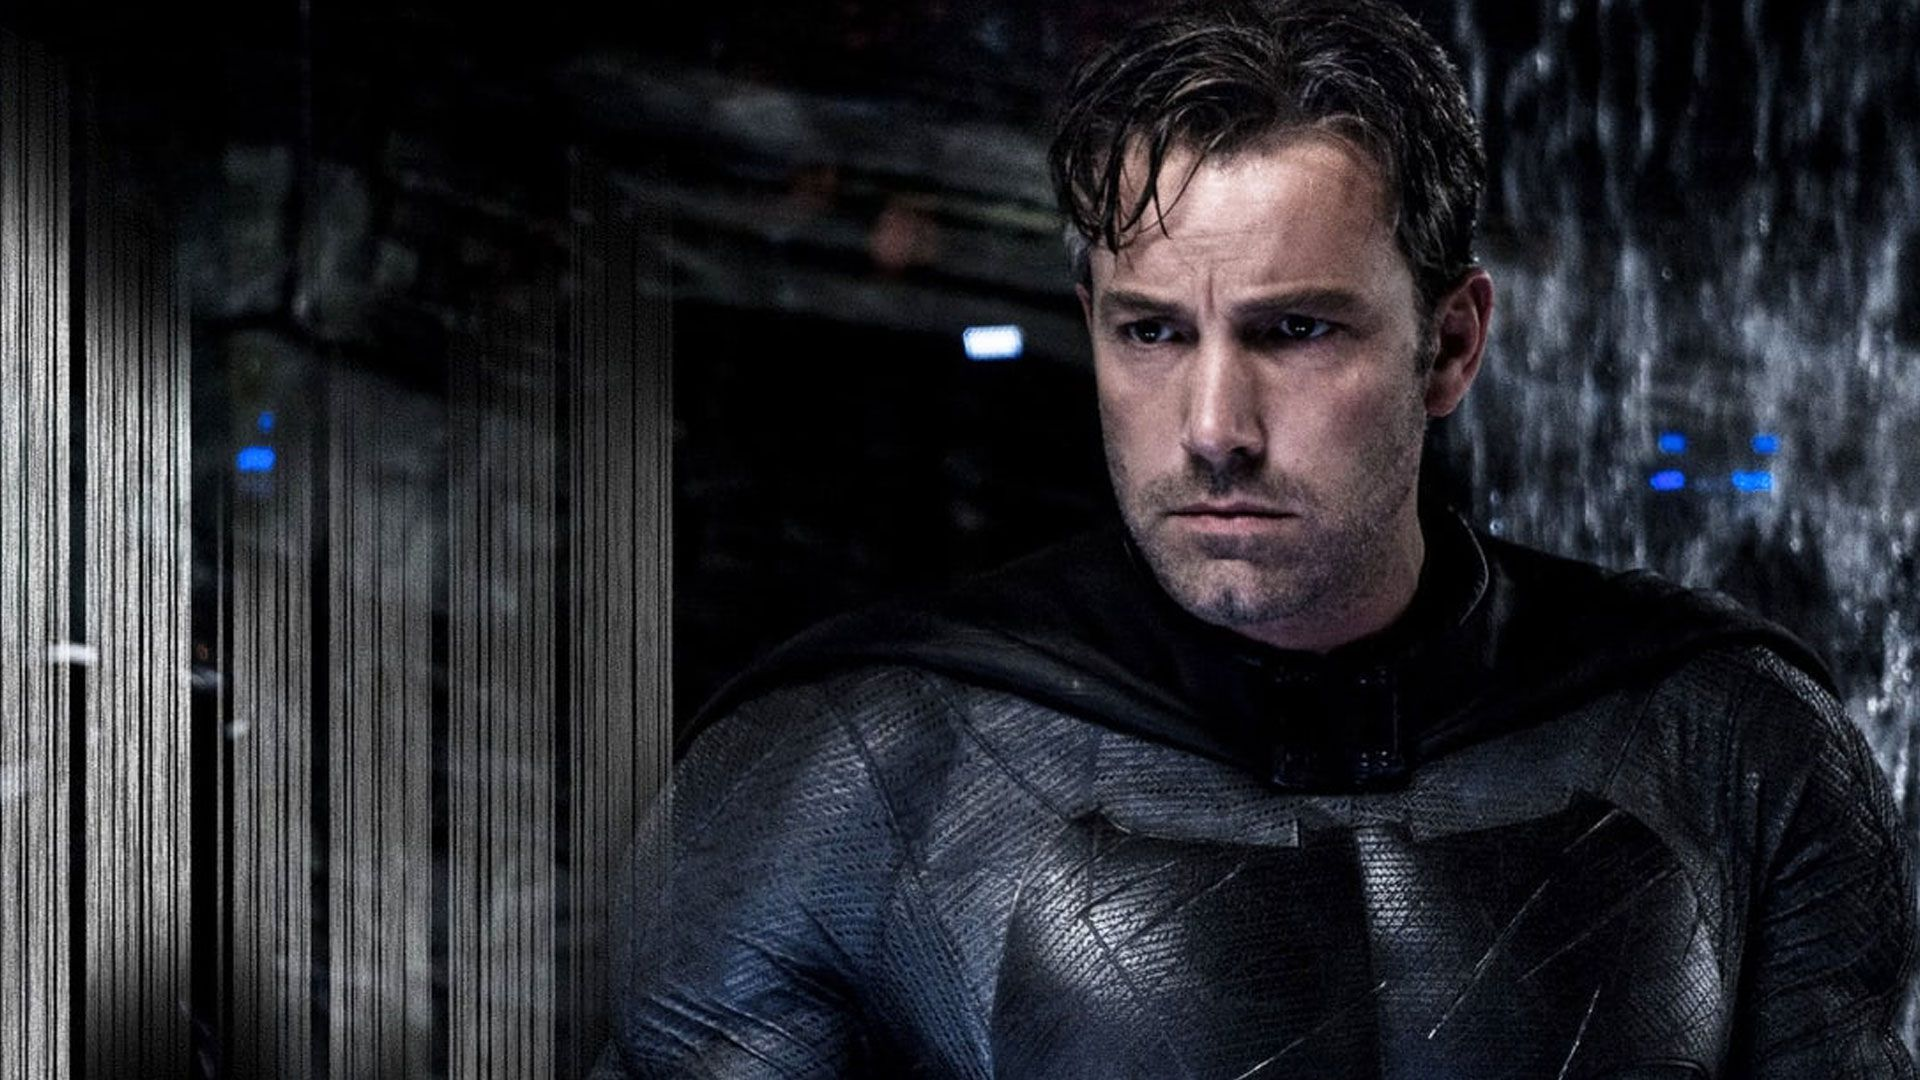 5 Reasons Why: Ben Affleck Was the Best Batman on Film